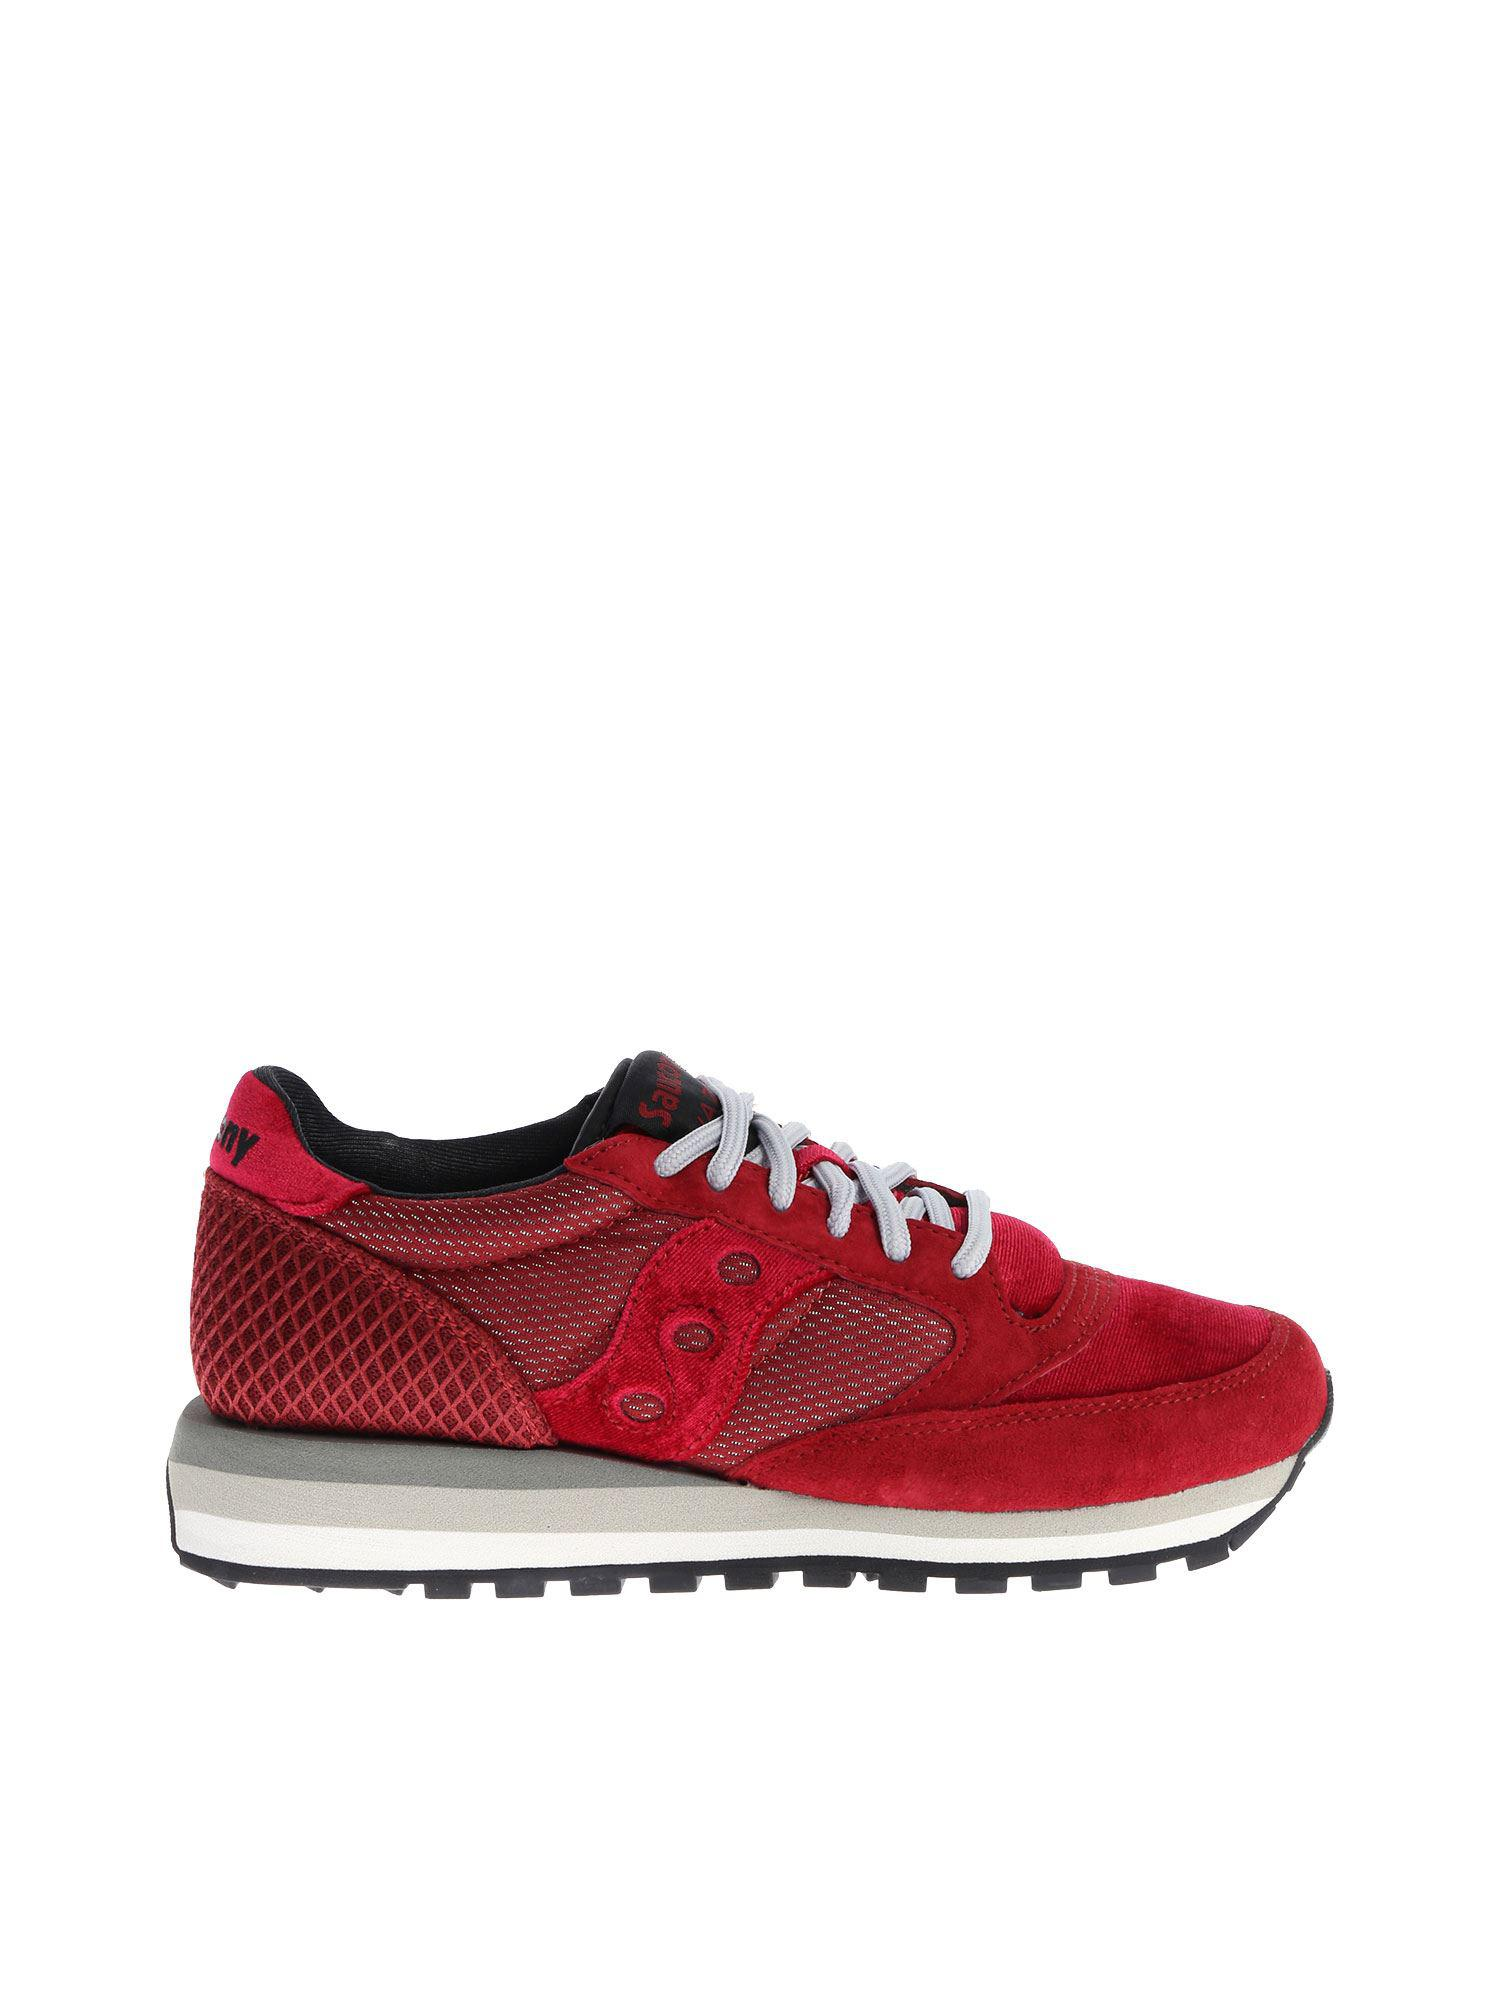 Saucony - Red Burgundy